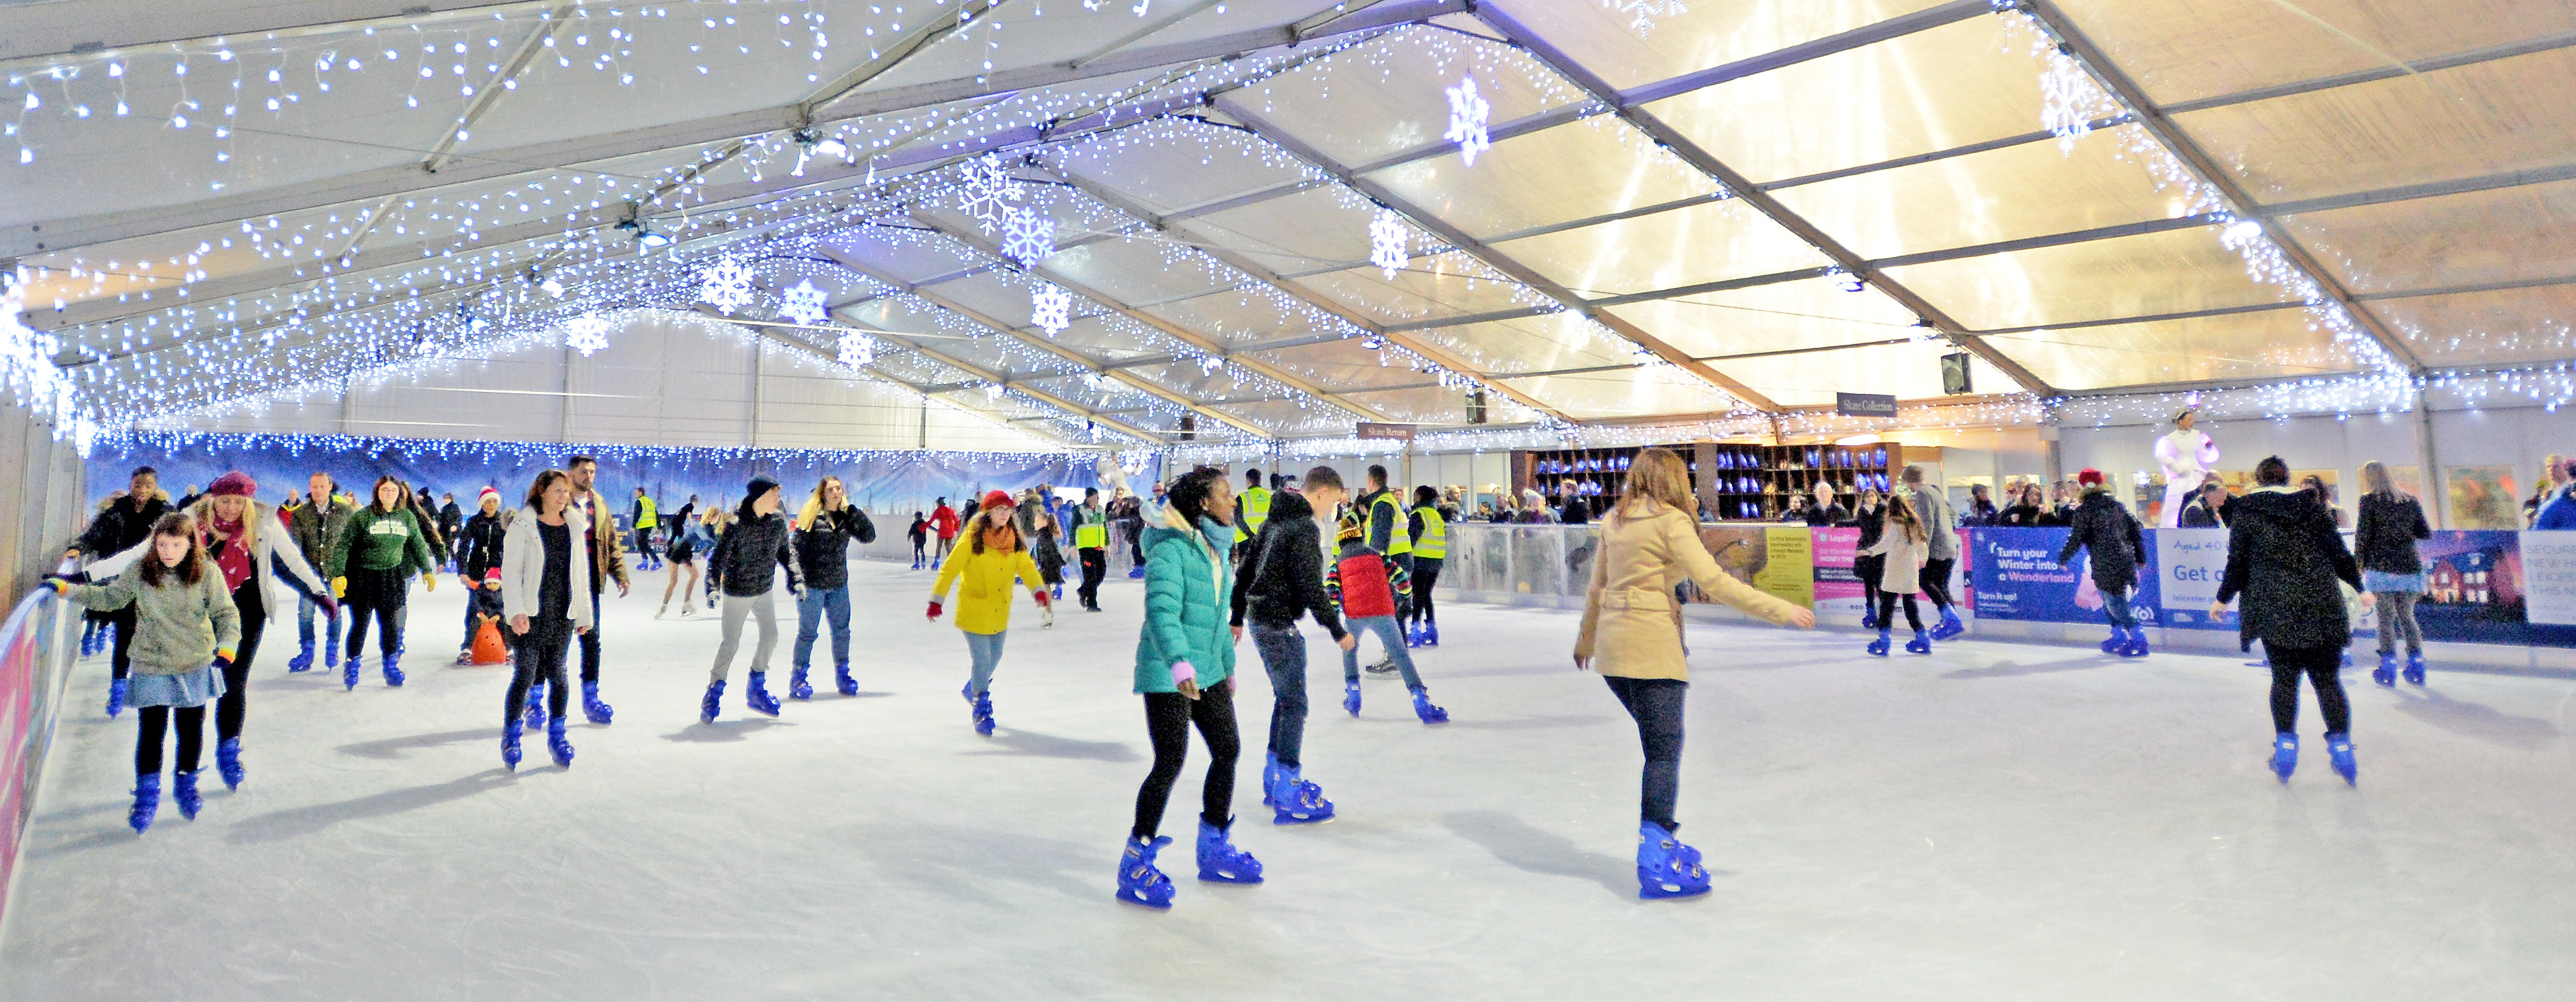 ice skating leicester